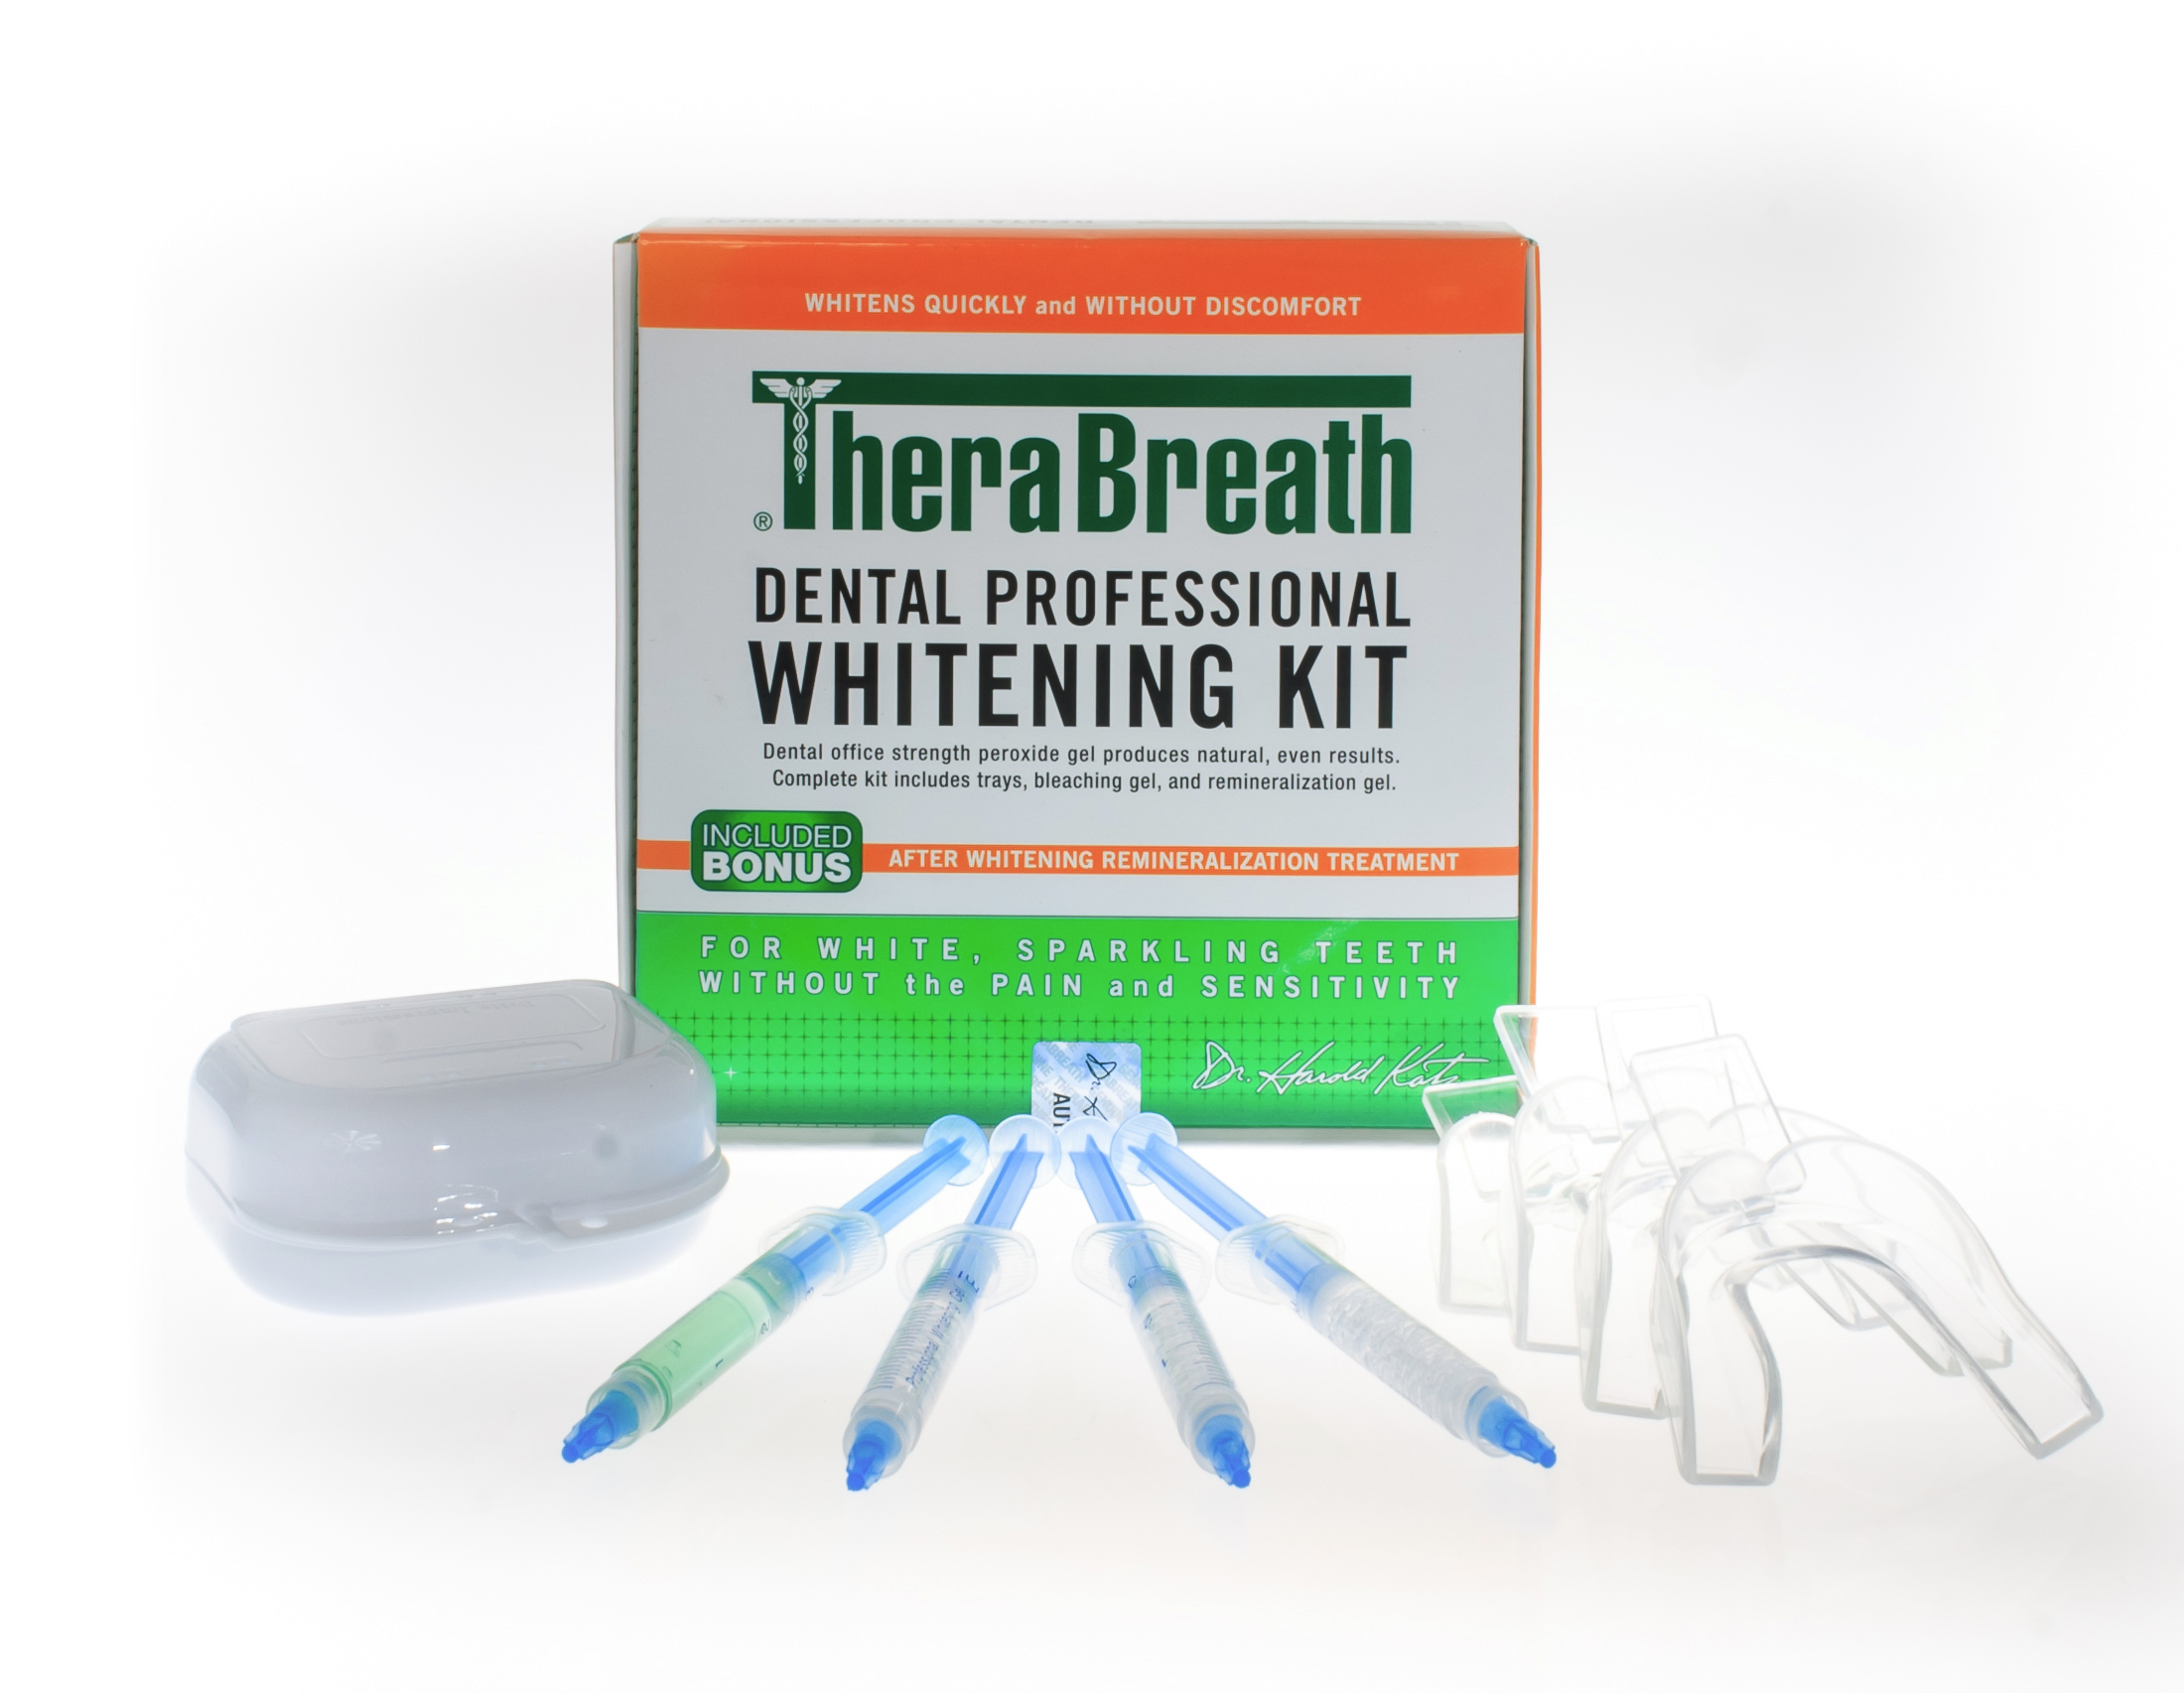 TheraBreath Dental Professional Whitening Kit